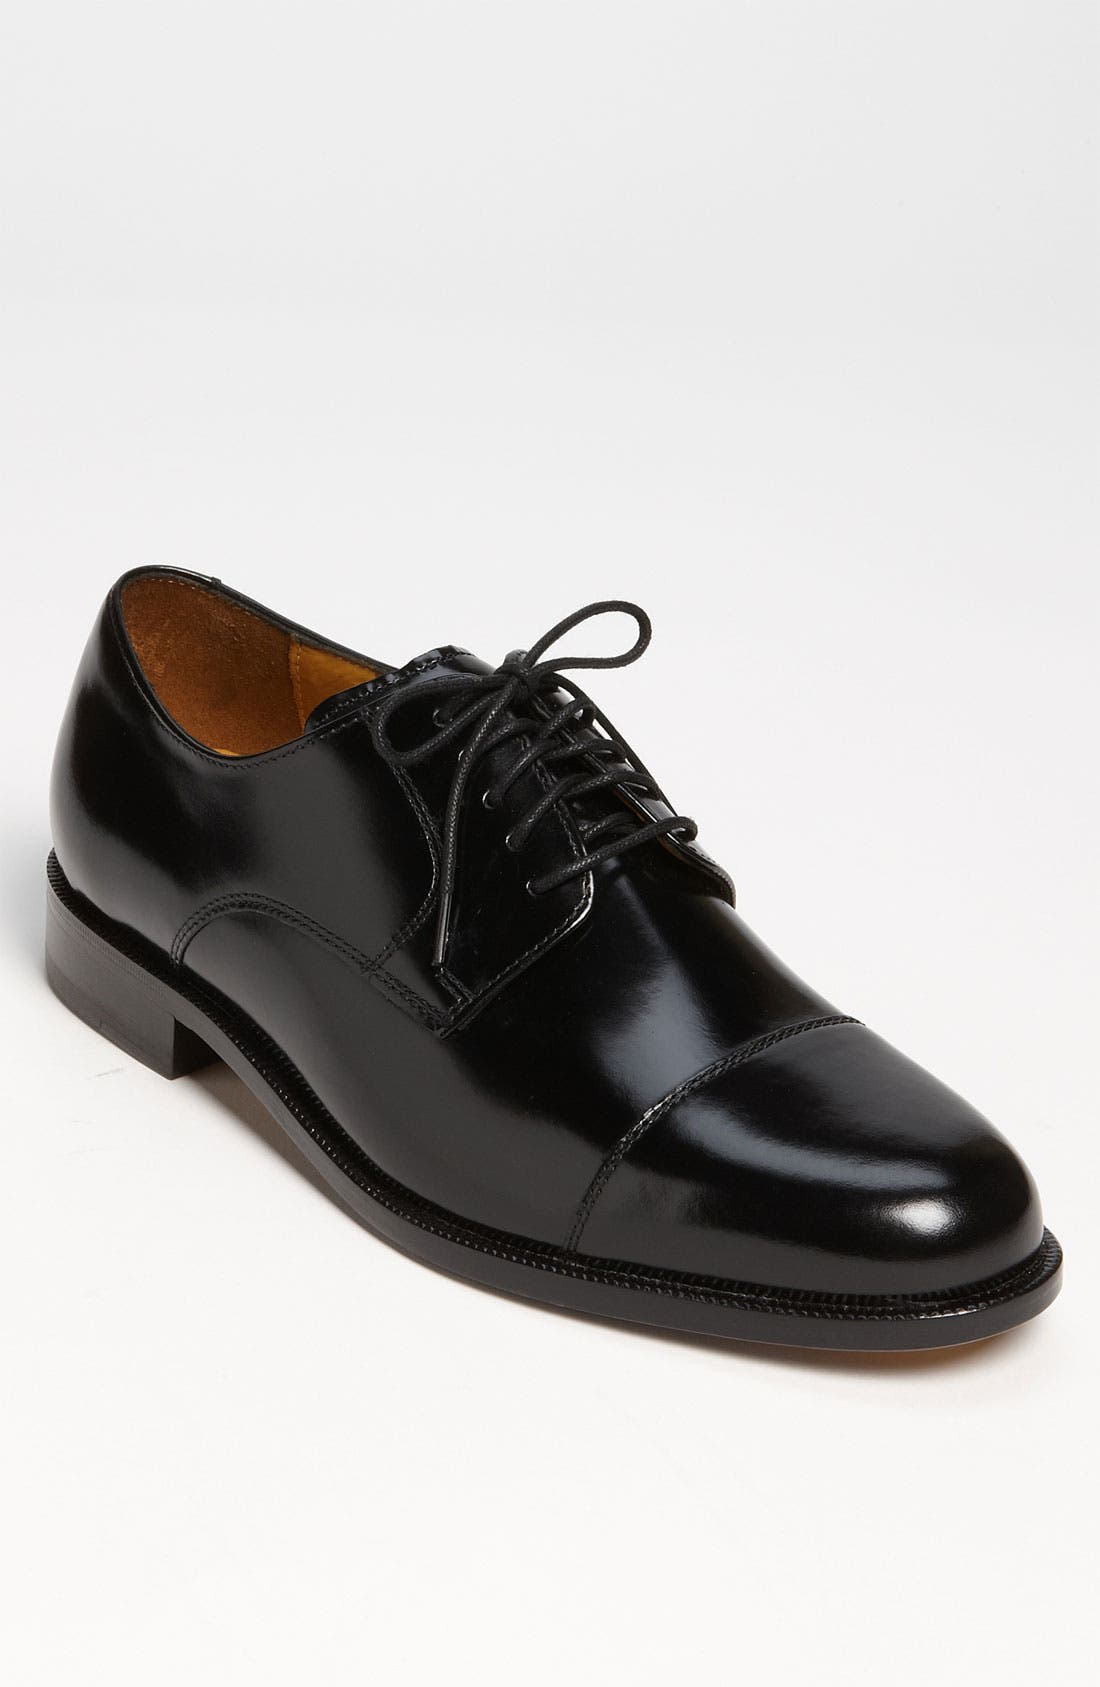 Alternate Image 1 Selected - Cole Haan 'Air Carter' Oxford (Online Only)   (Men)